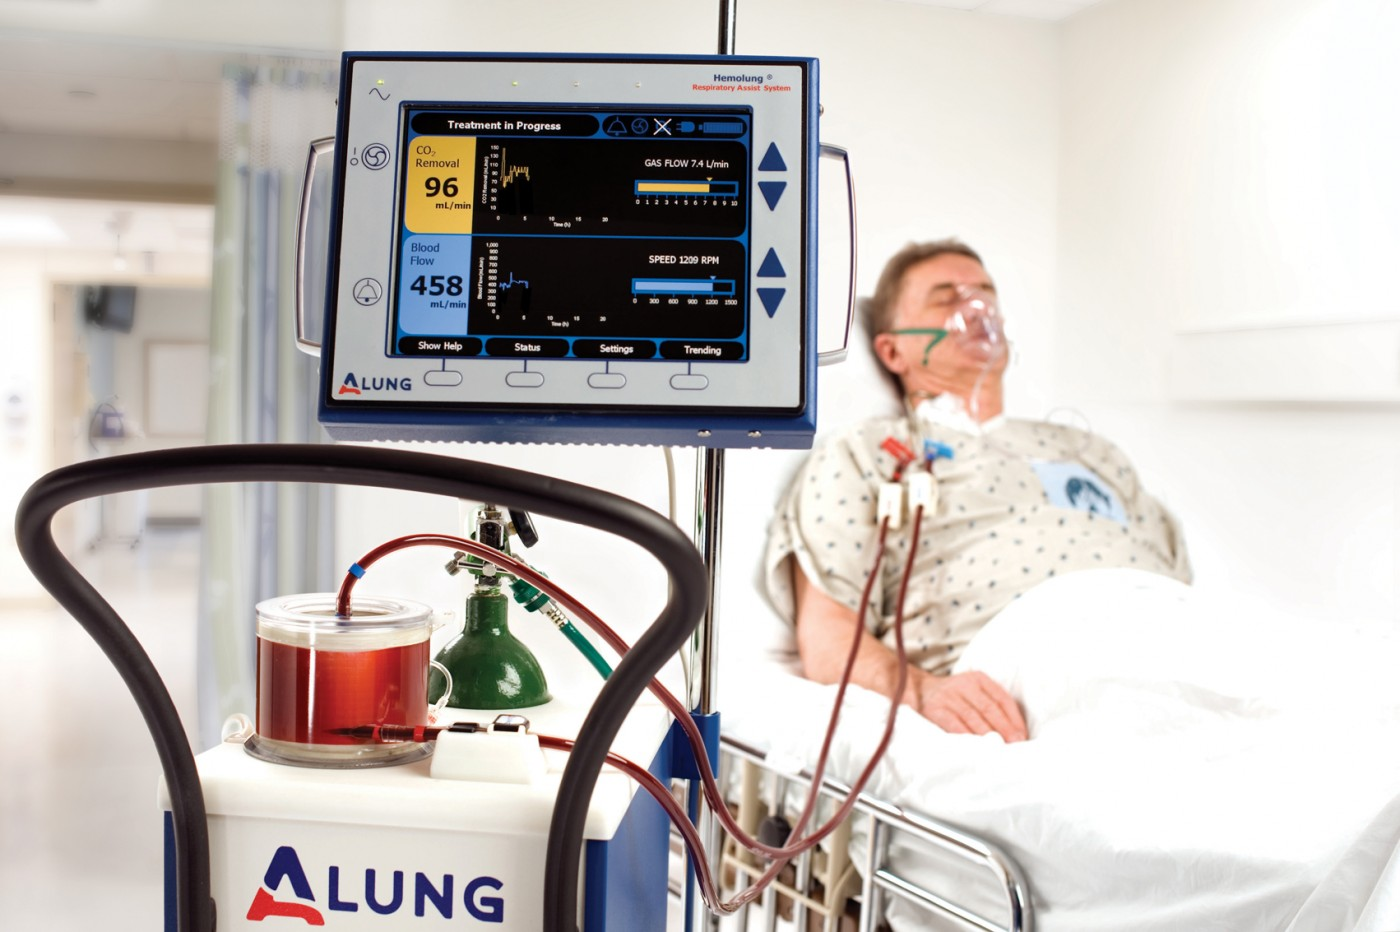 Cystic Fibrosis Lung Transplant Patient First in US to be Saved by Hemolung